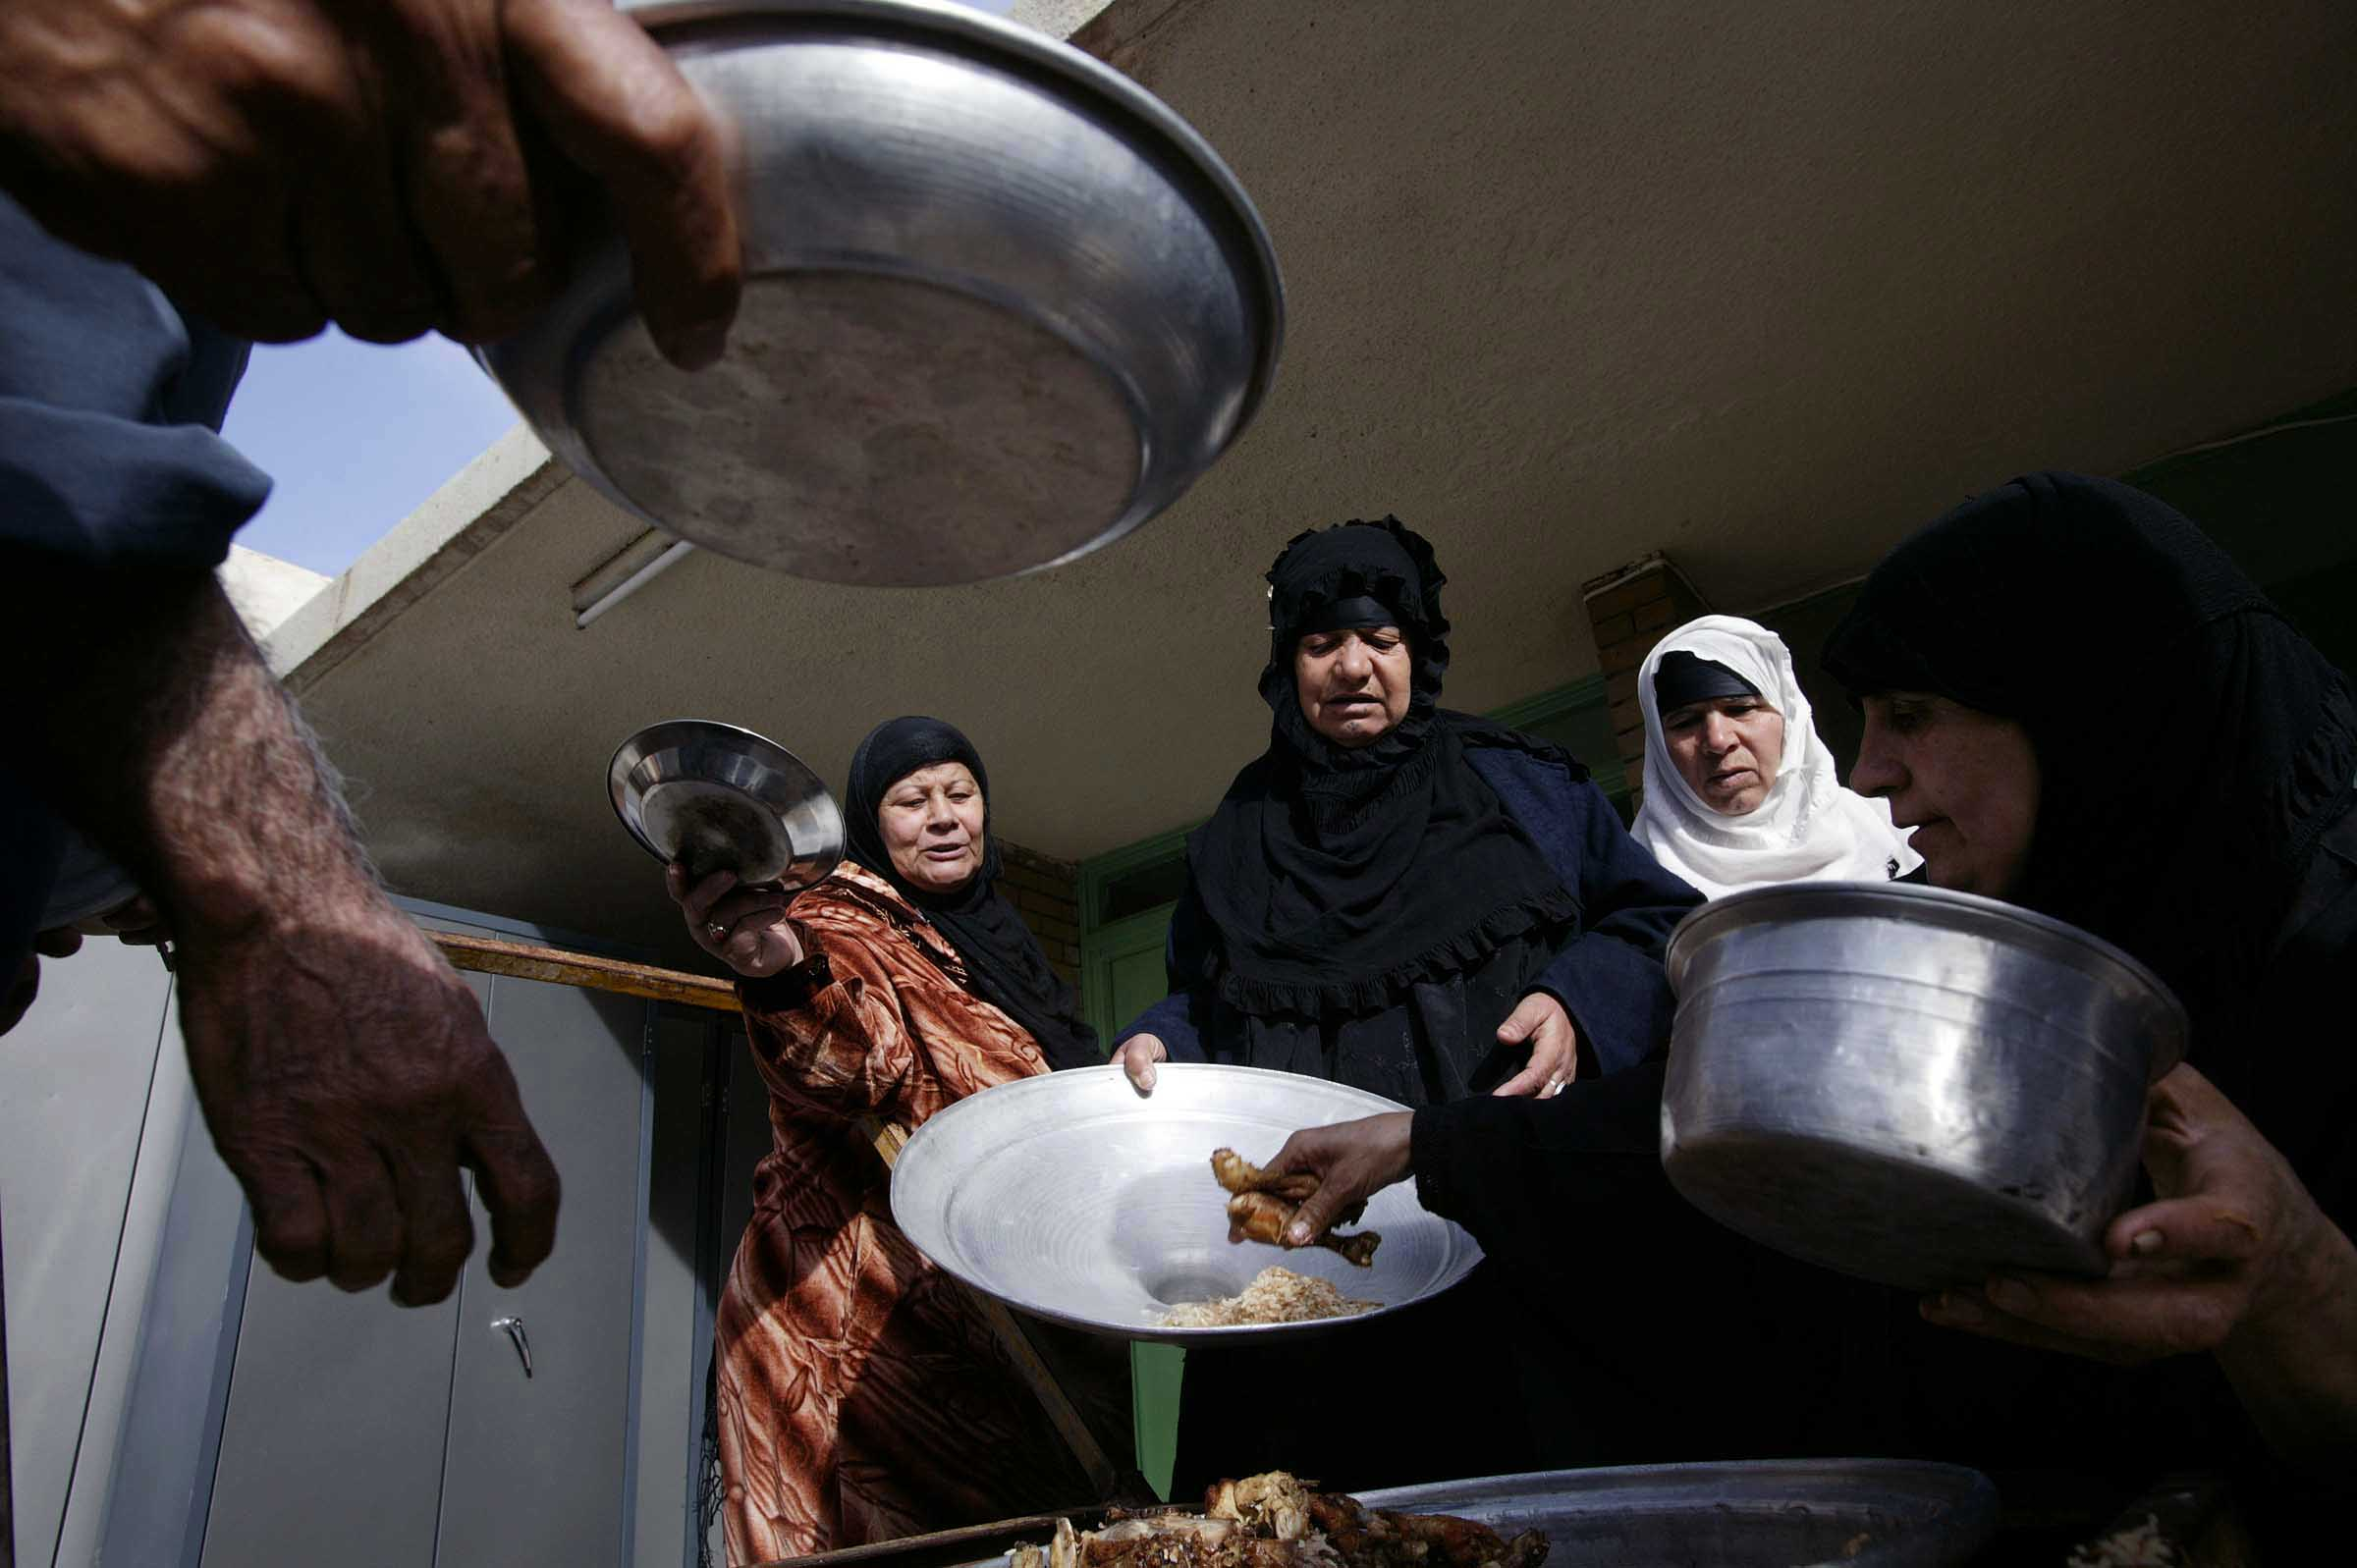 Nursing home residents gather around Hamdeya Mehdi, 40, right, who is serving chicken and rice. Once a month Mehdi does Zakat or charity to the poor.